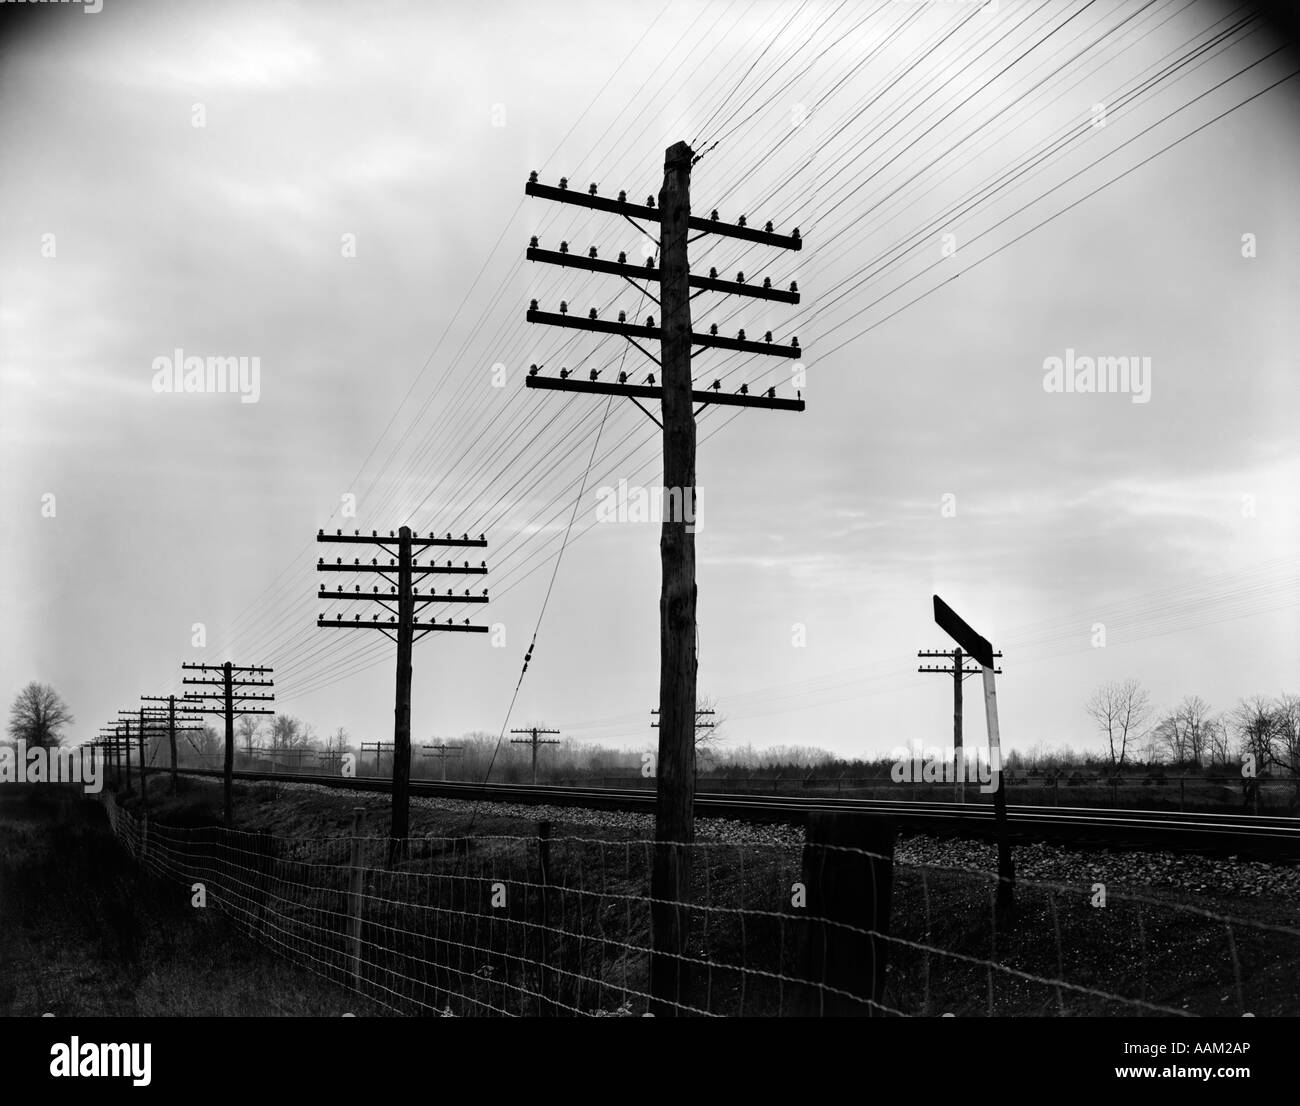 hight resolution of 1930s 1940s telegraph and telephone poles and wires along railroad track right of way stock